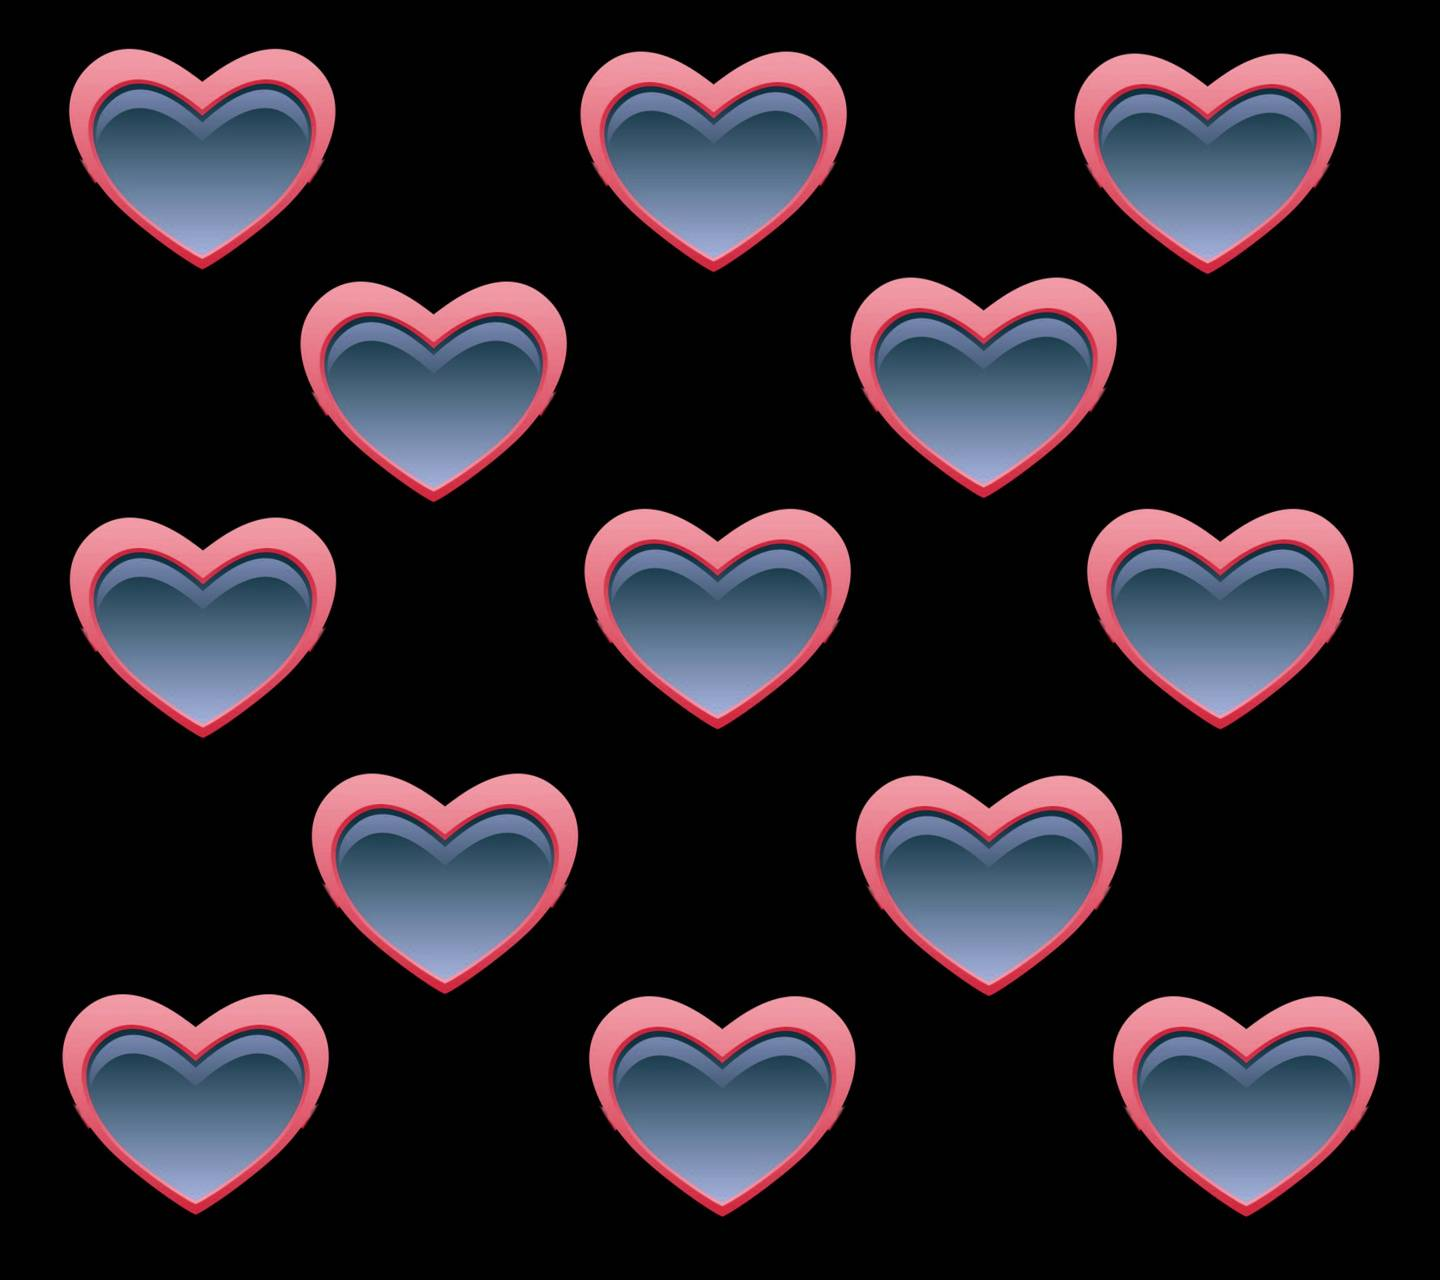 Just Hearts 2